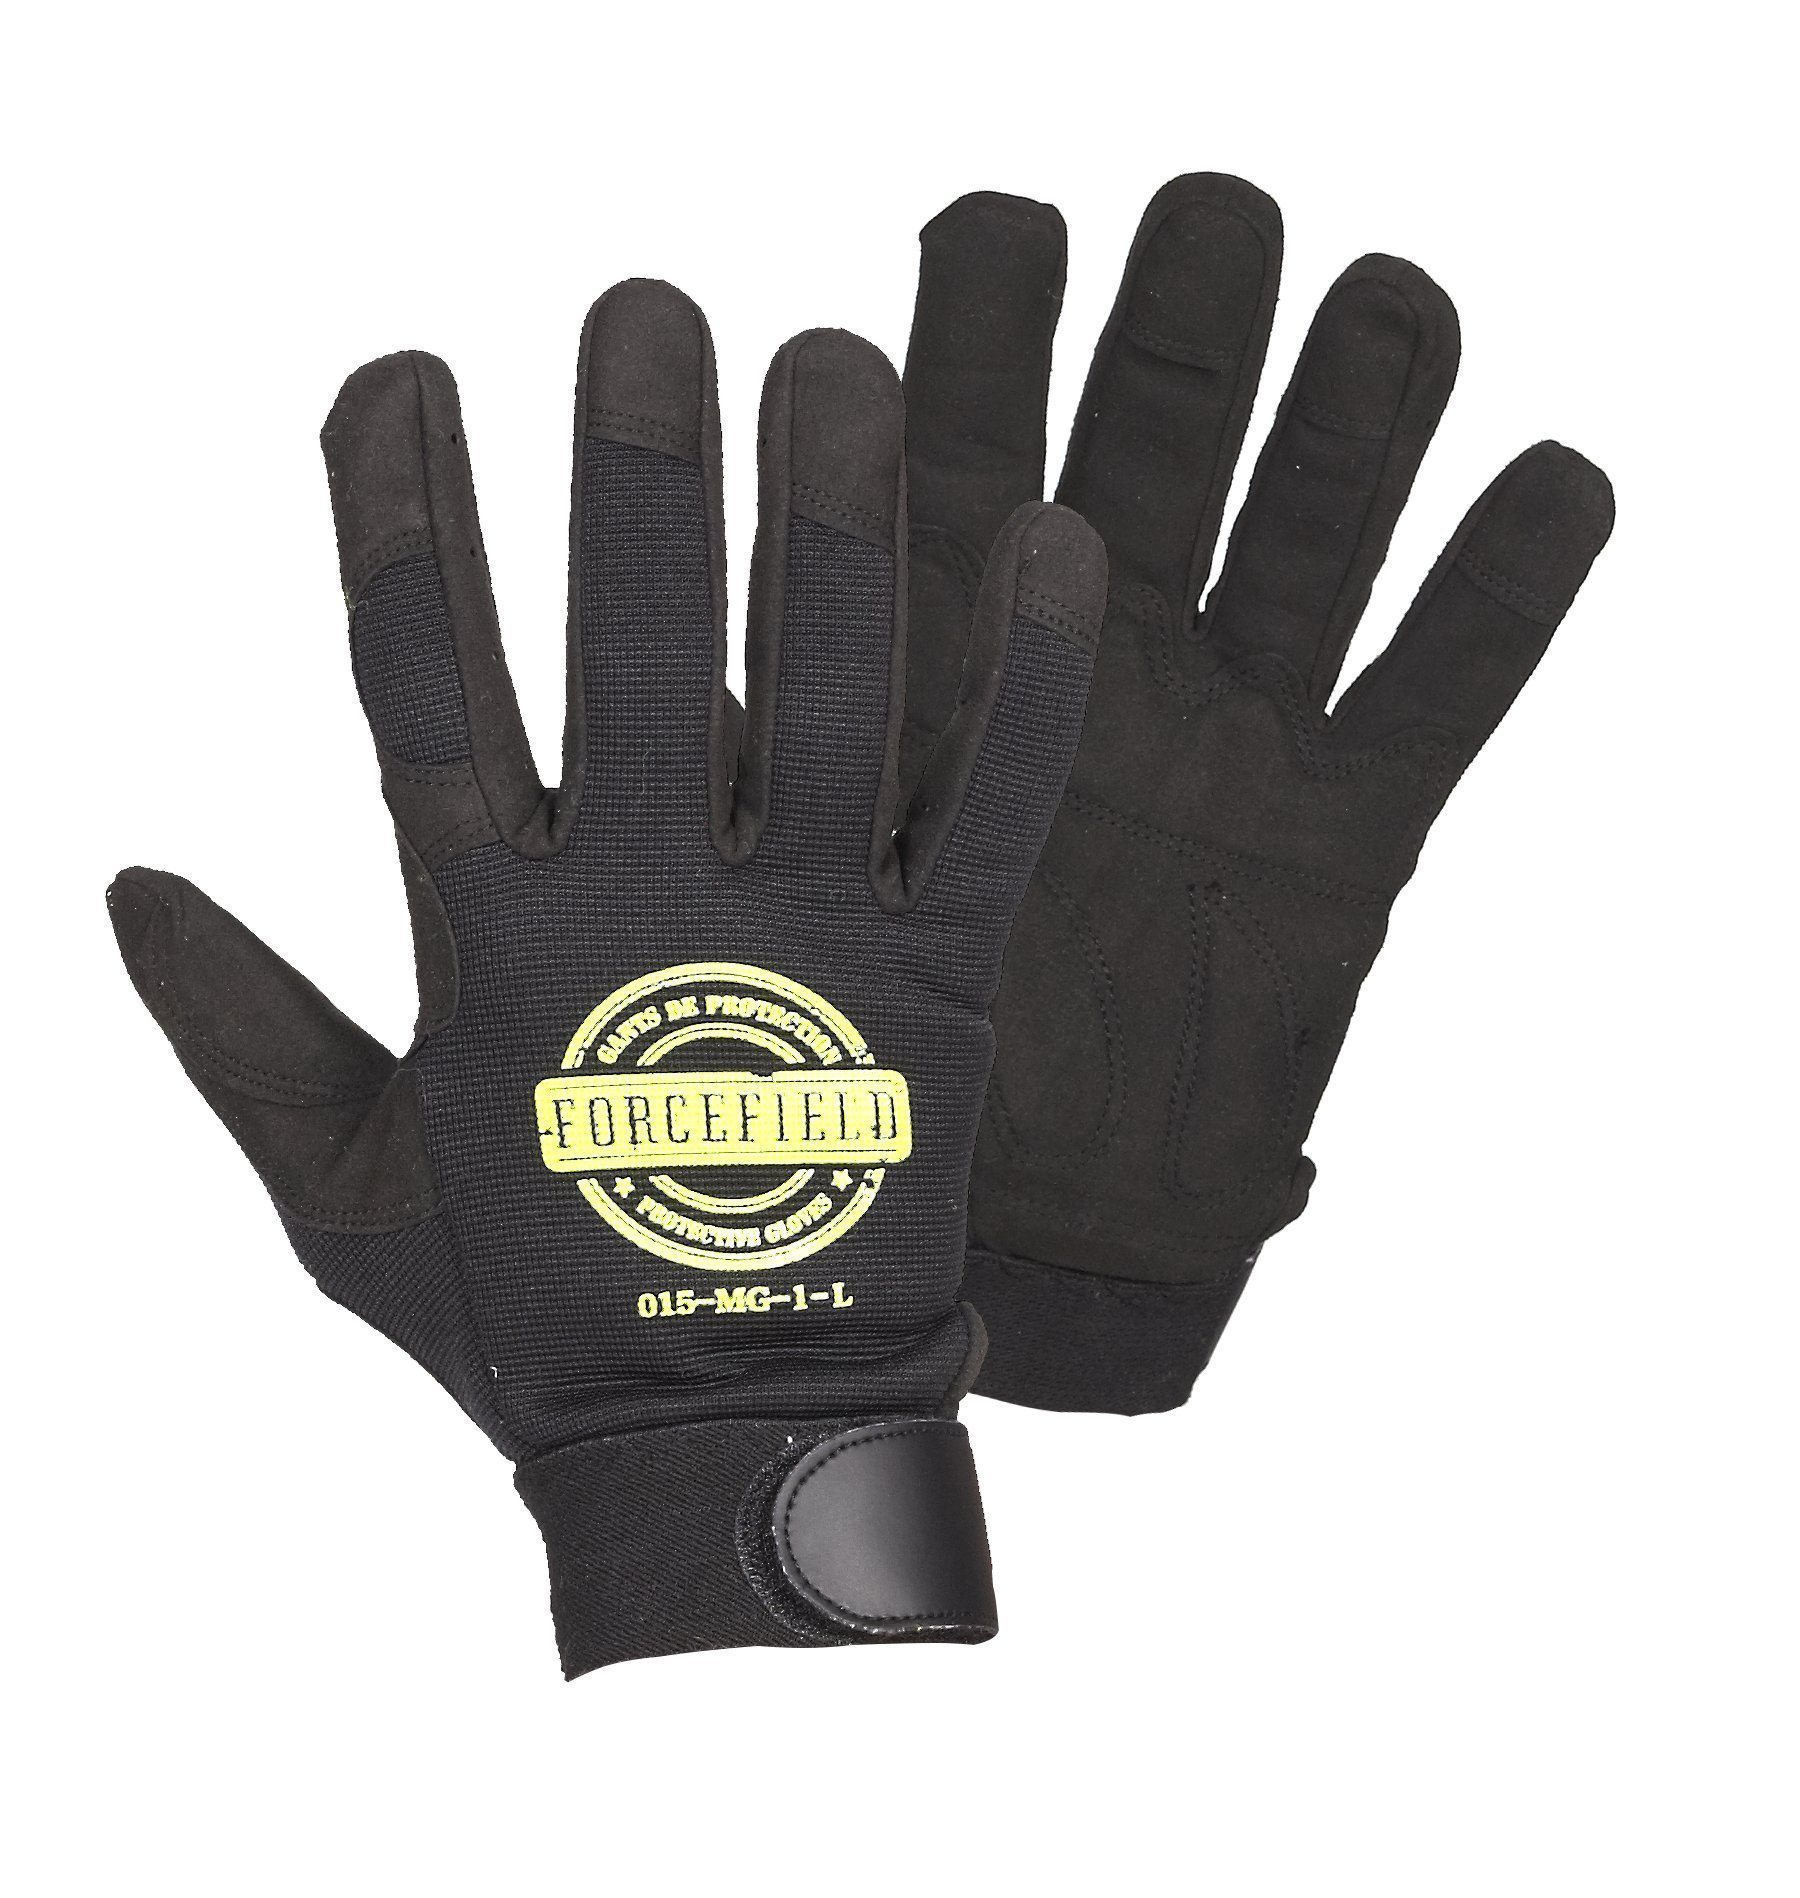 Mechanics Glove - Forcefield - Unlined - Black (Extra Large)